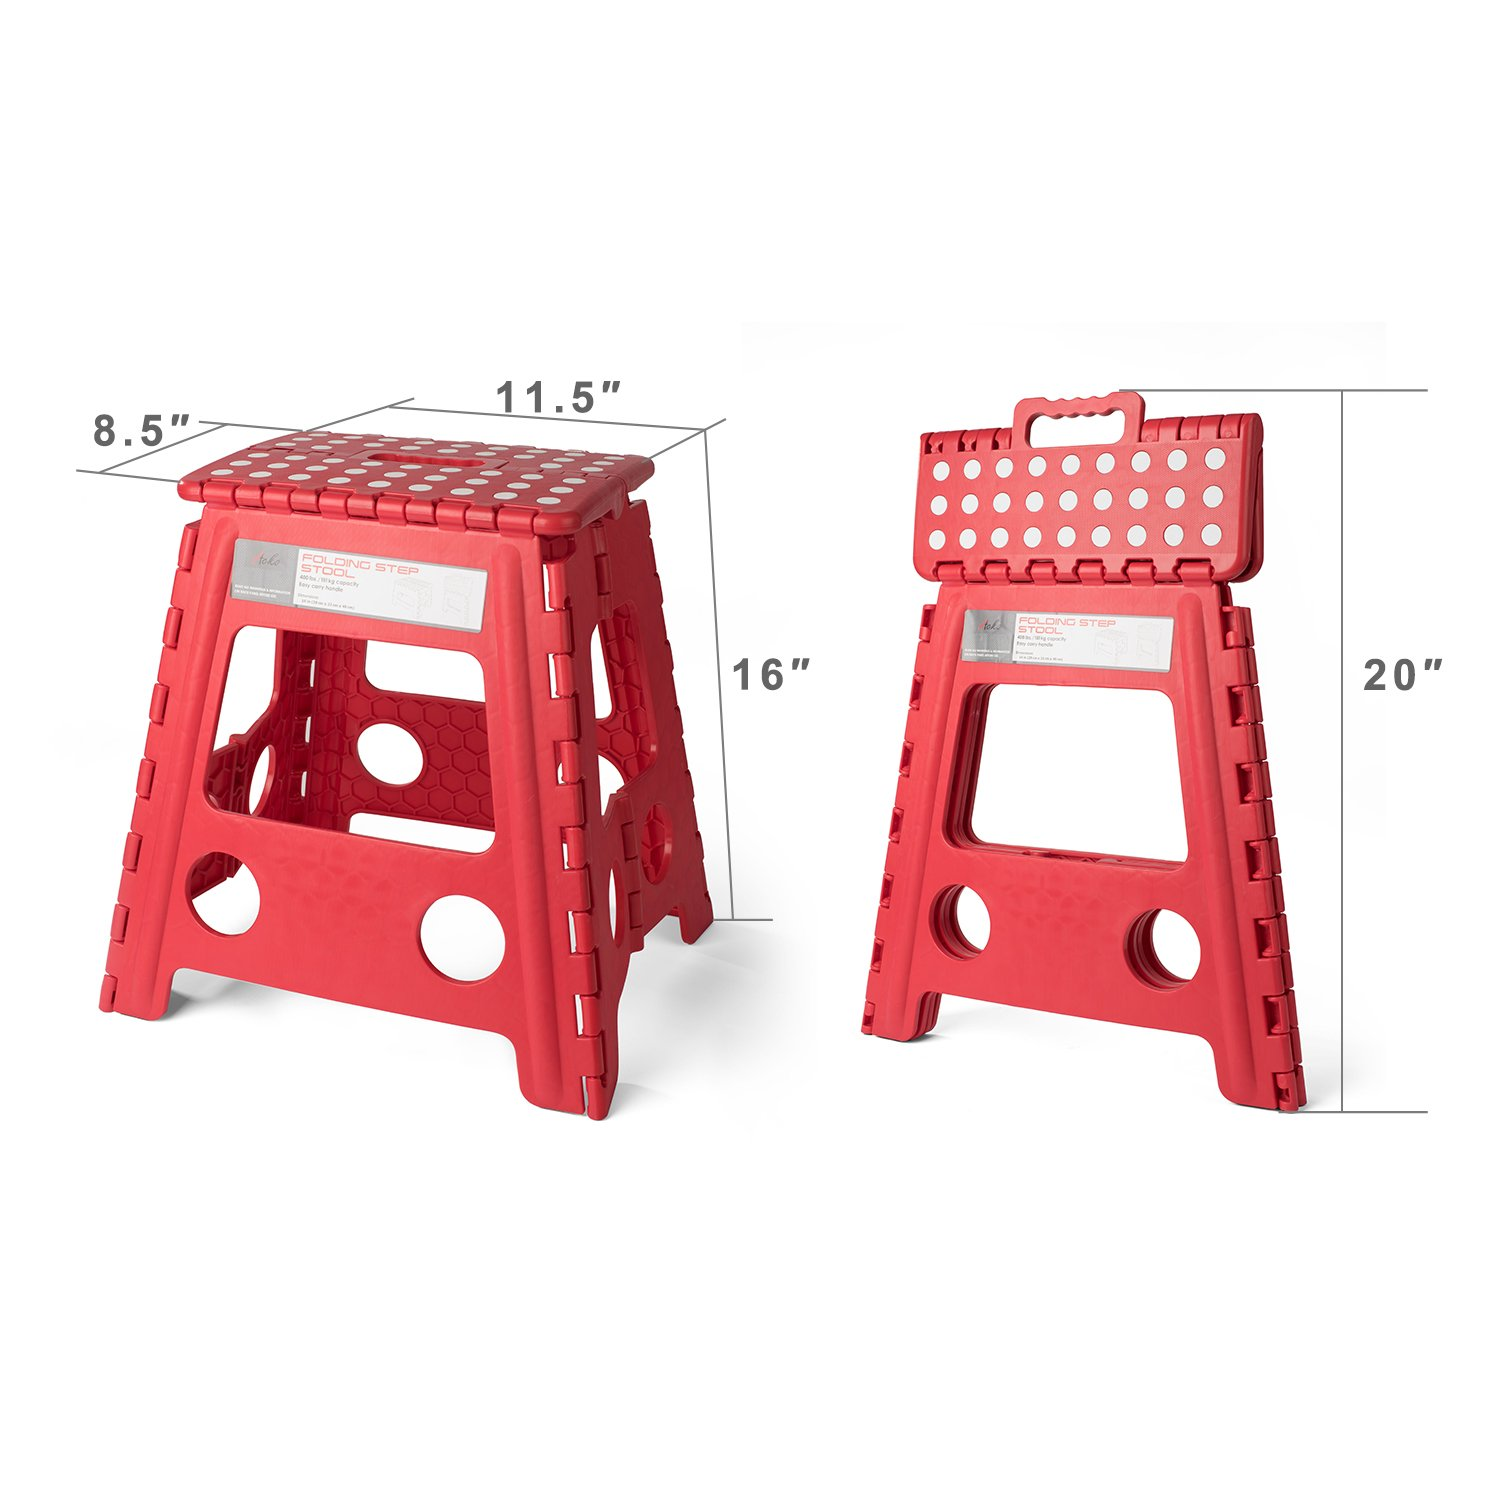 Luxury 7 Inch Step Stool